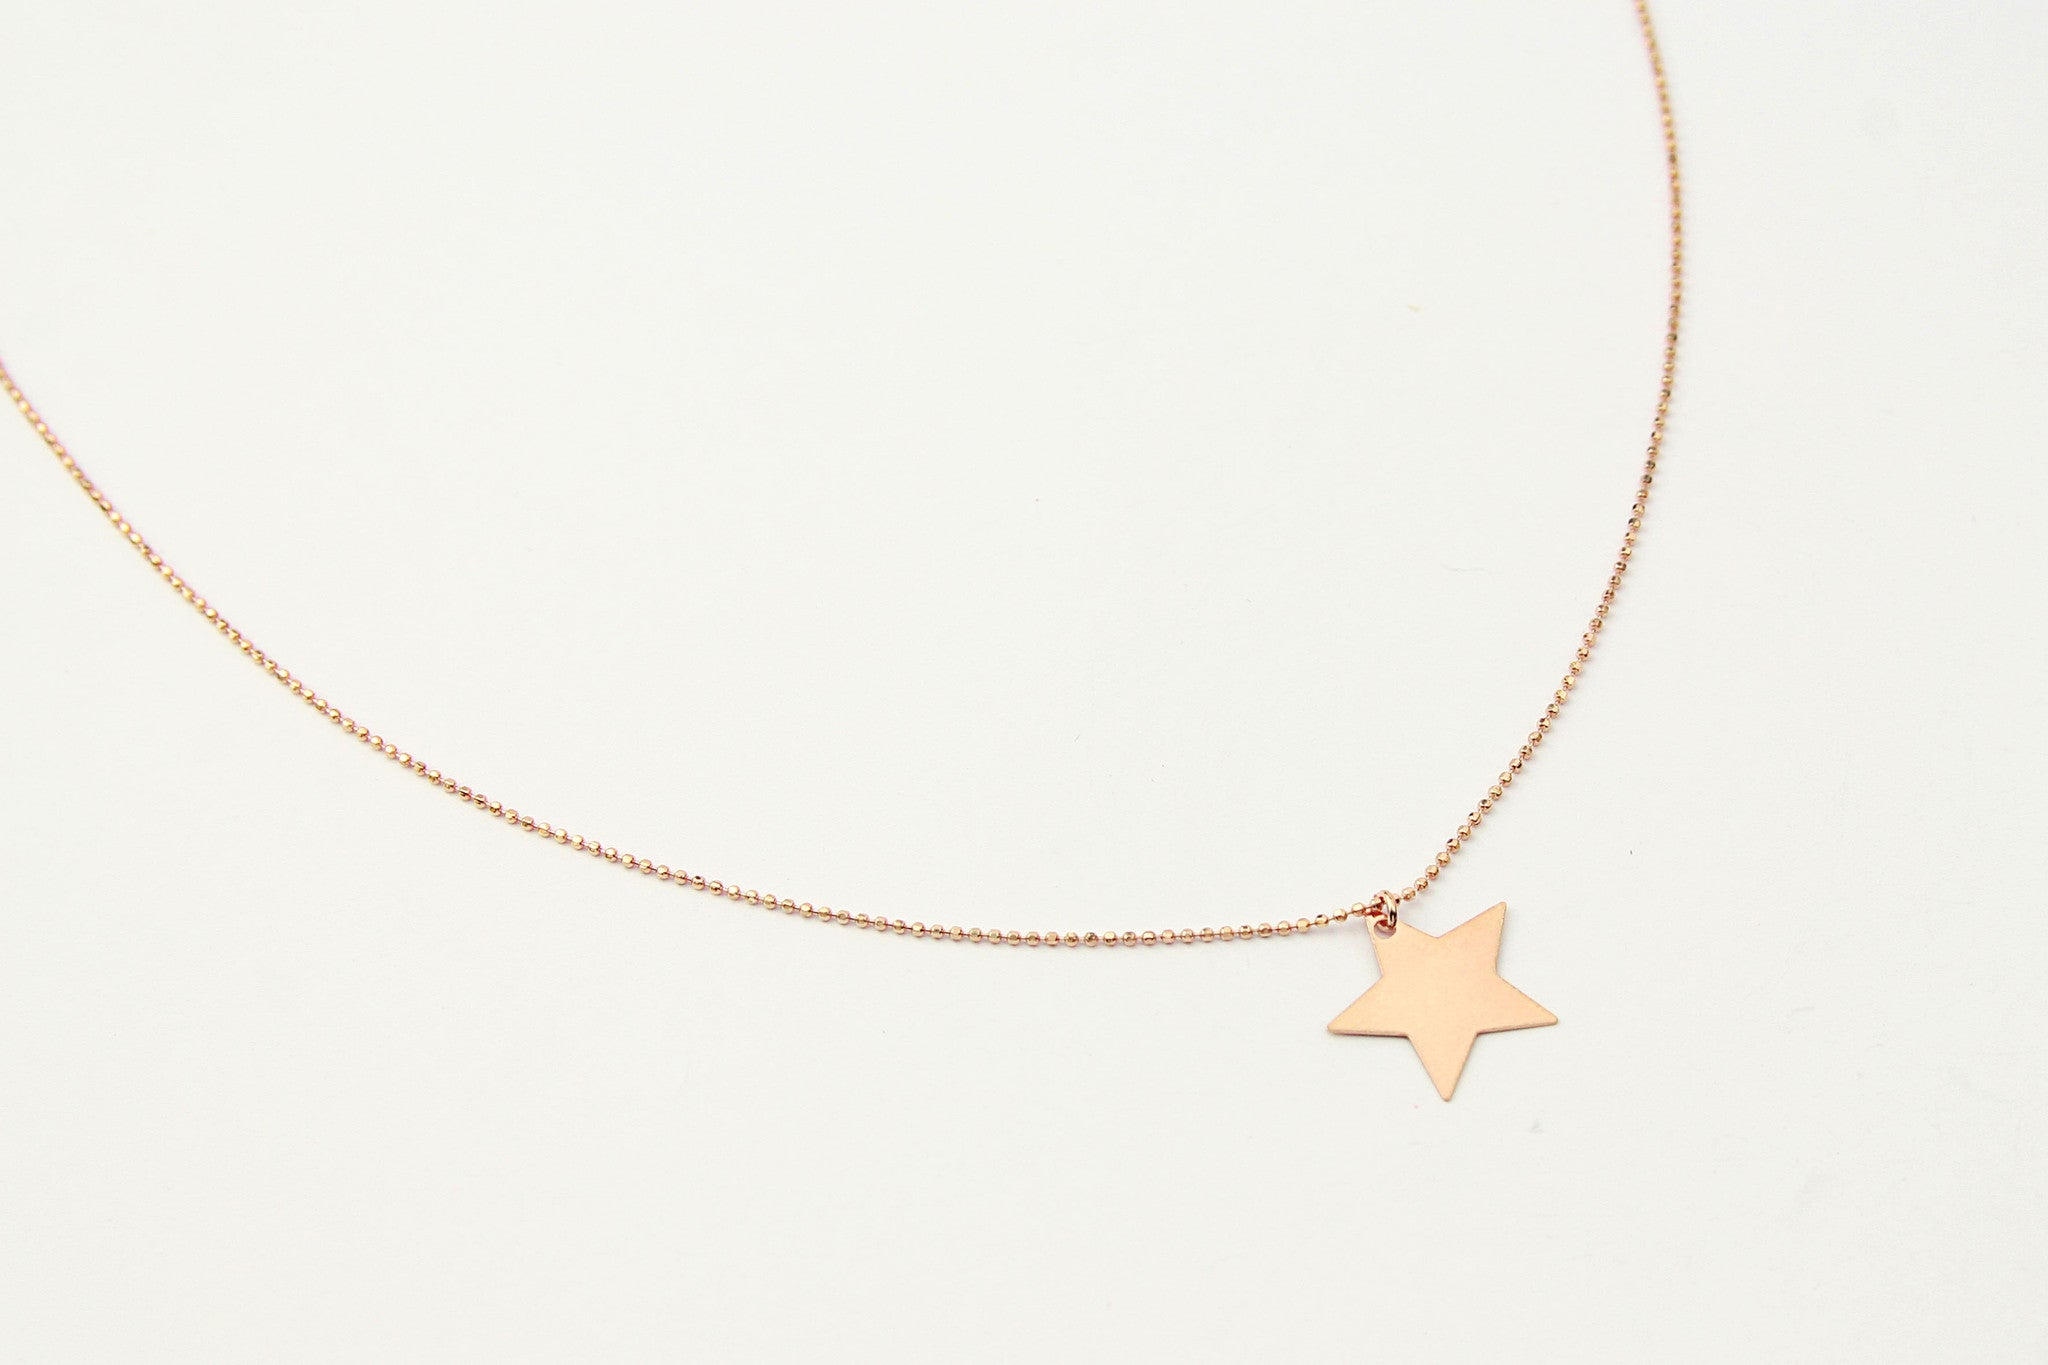 jewelberry  fine jewelry handmade with love fairtrade necklace kette plain star medium bead chain rose gold plated sterling silver